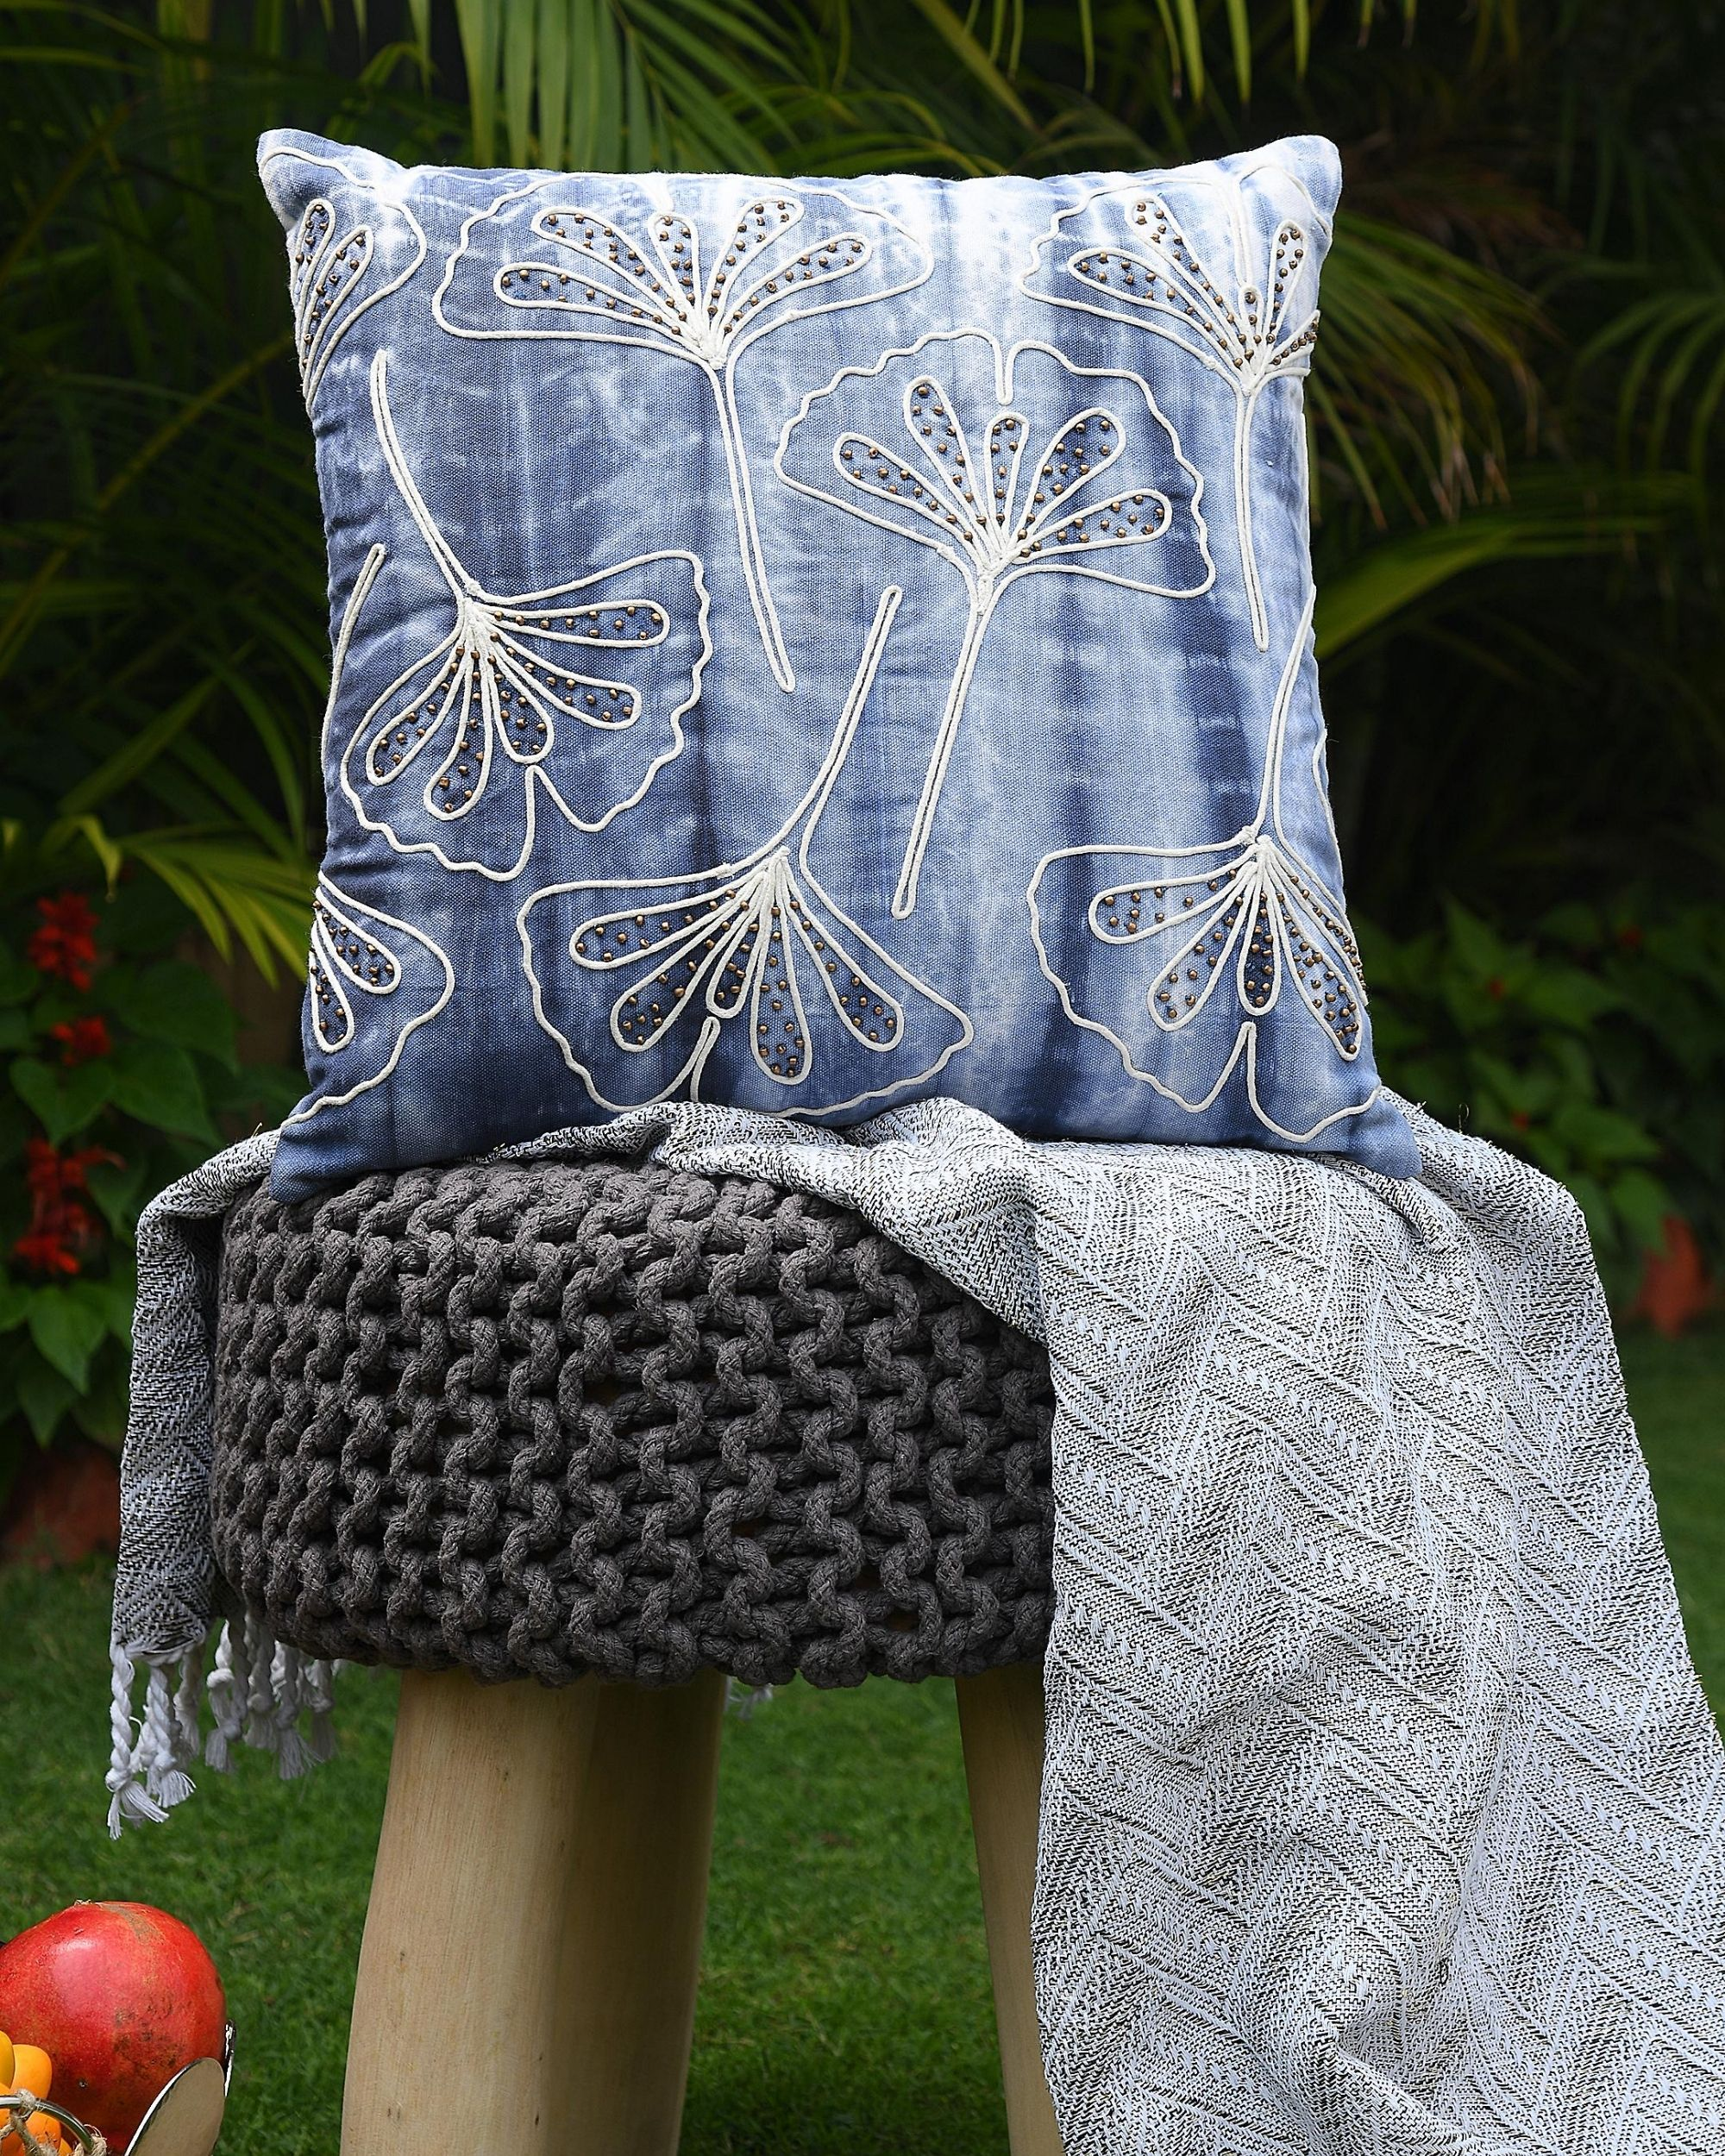 Shibori dyed embroidered cushion cover